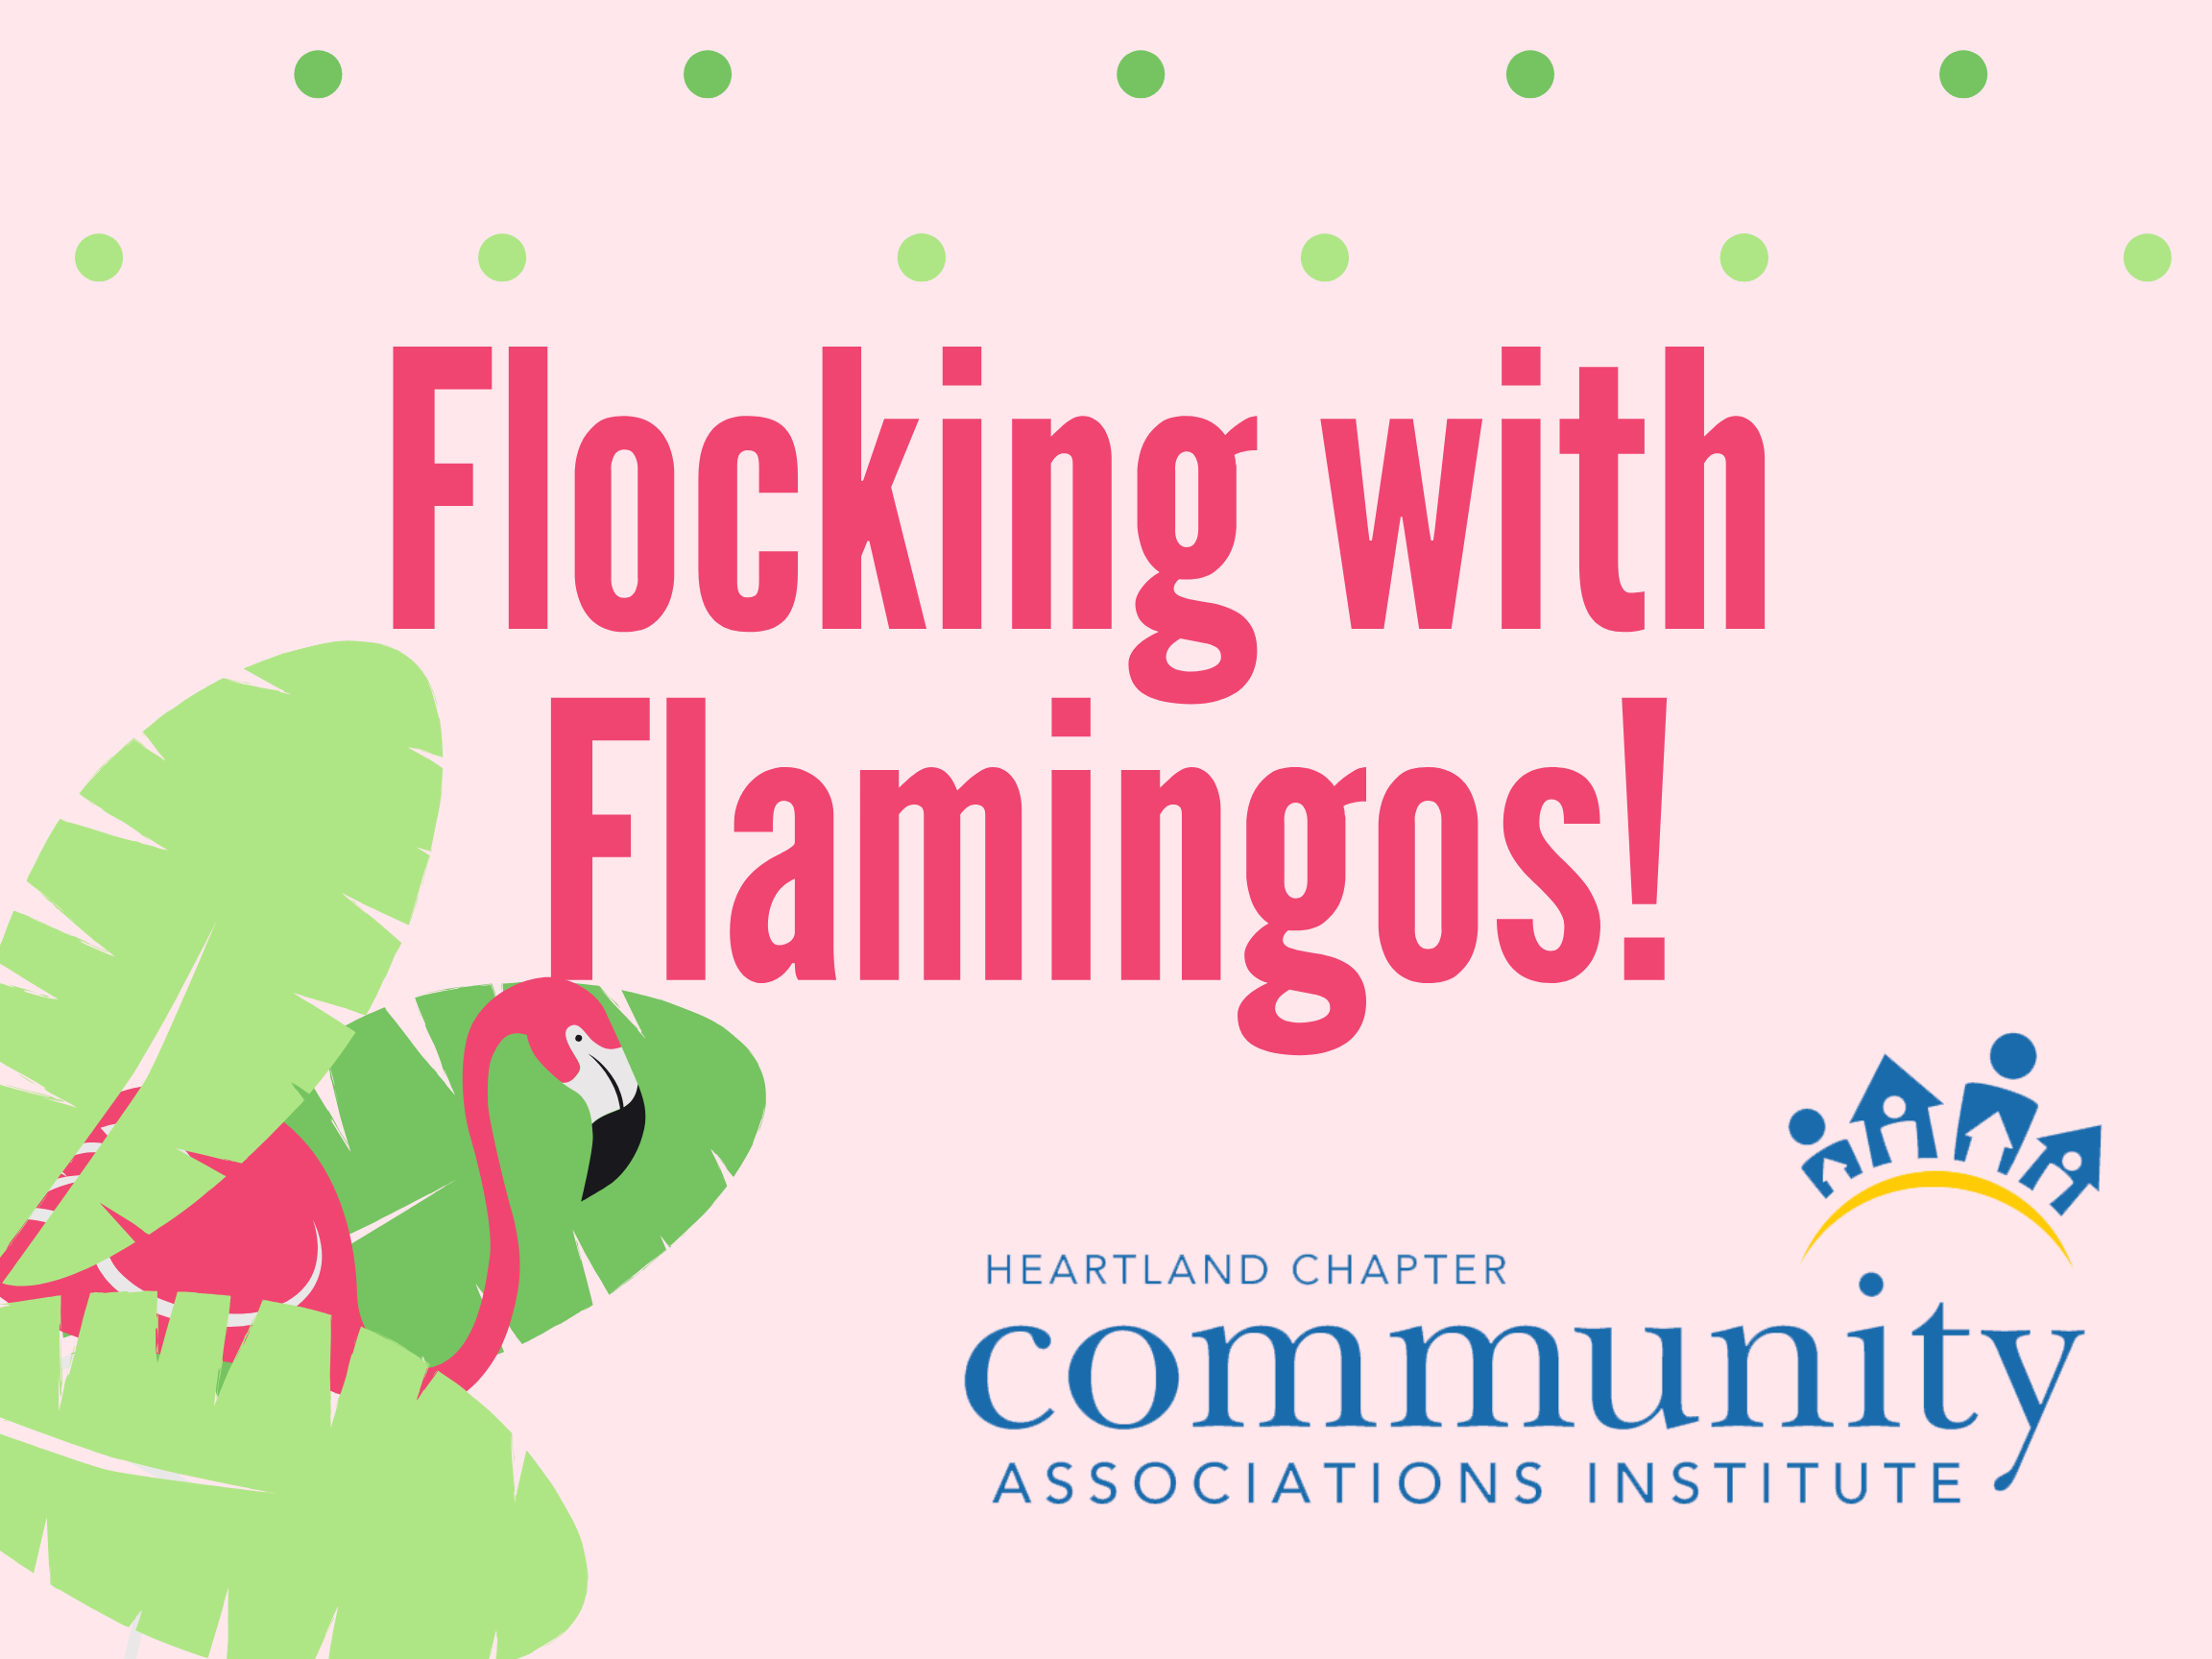 Flocking with Flamingos